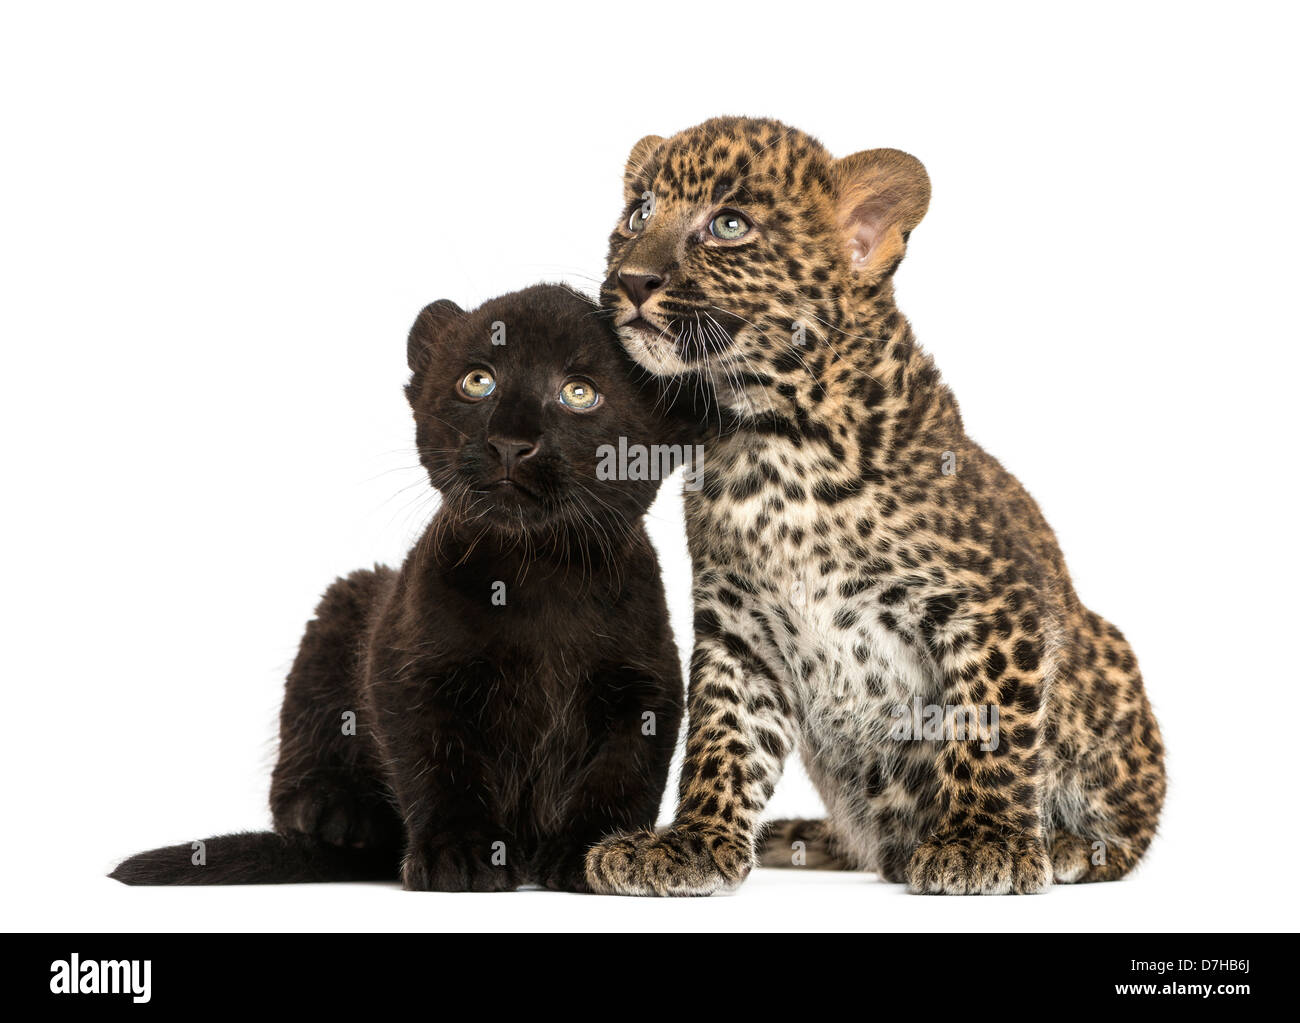 Black and Spotted Leopard cubs sitting next to each other against white background - Stock Image